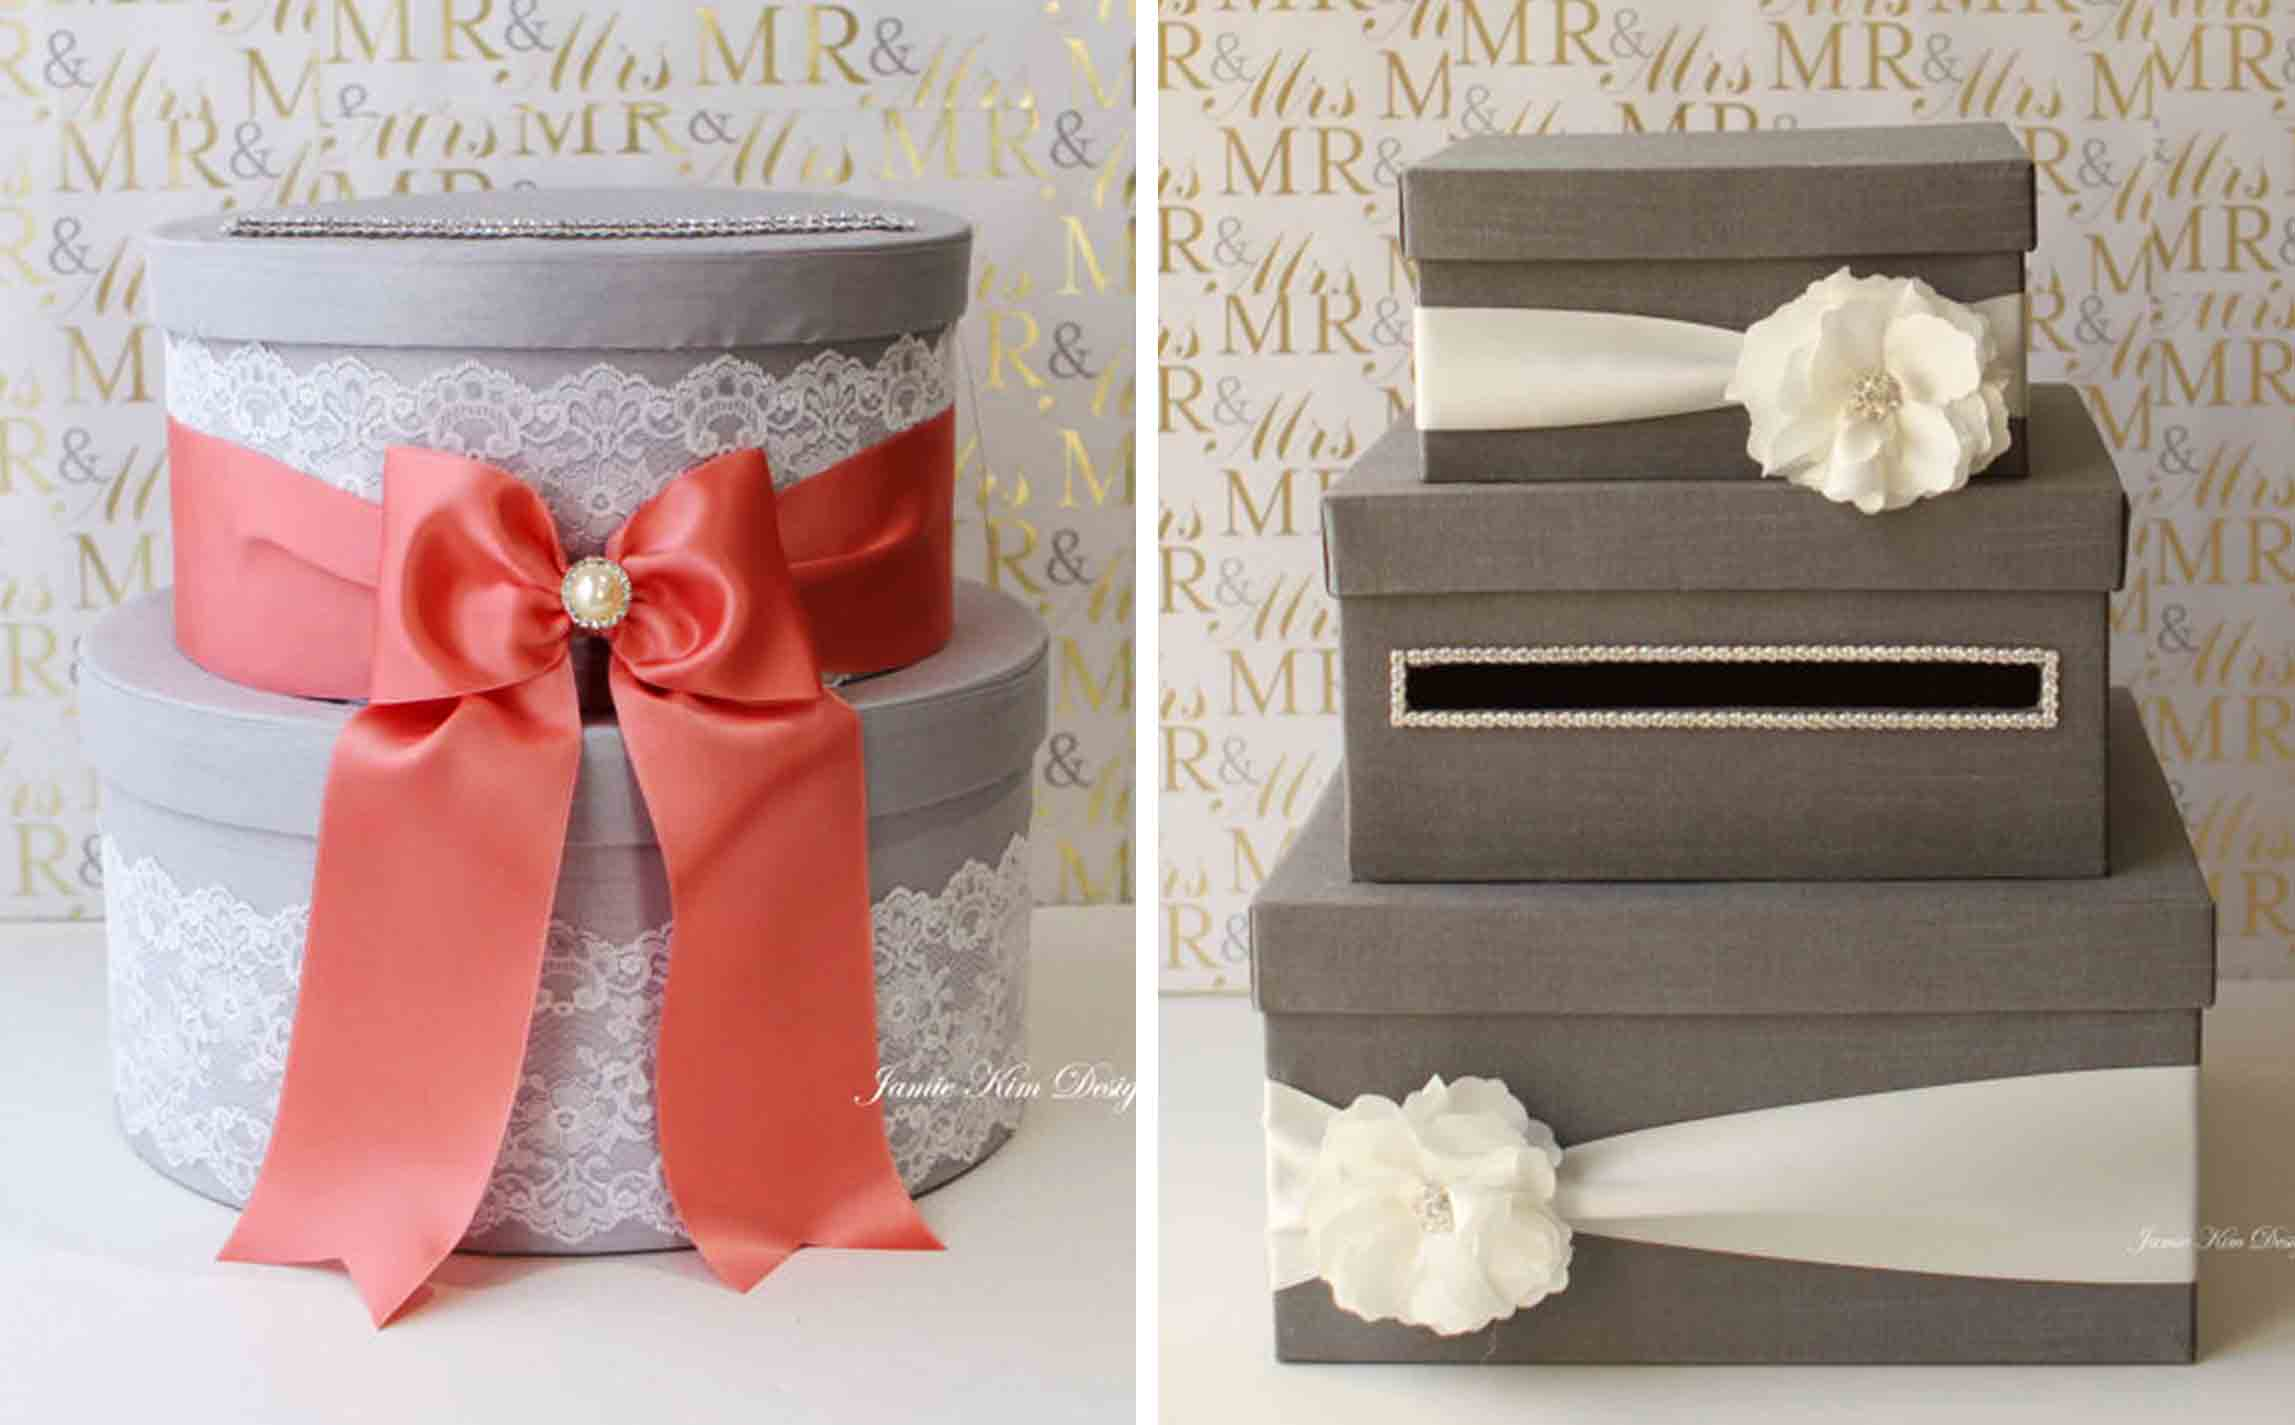 The Best Wedding Table Gift Card Holders | GCG